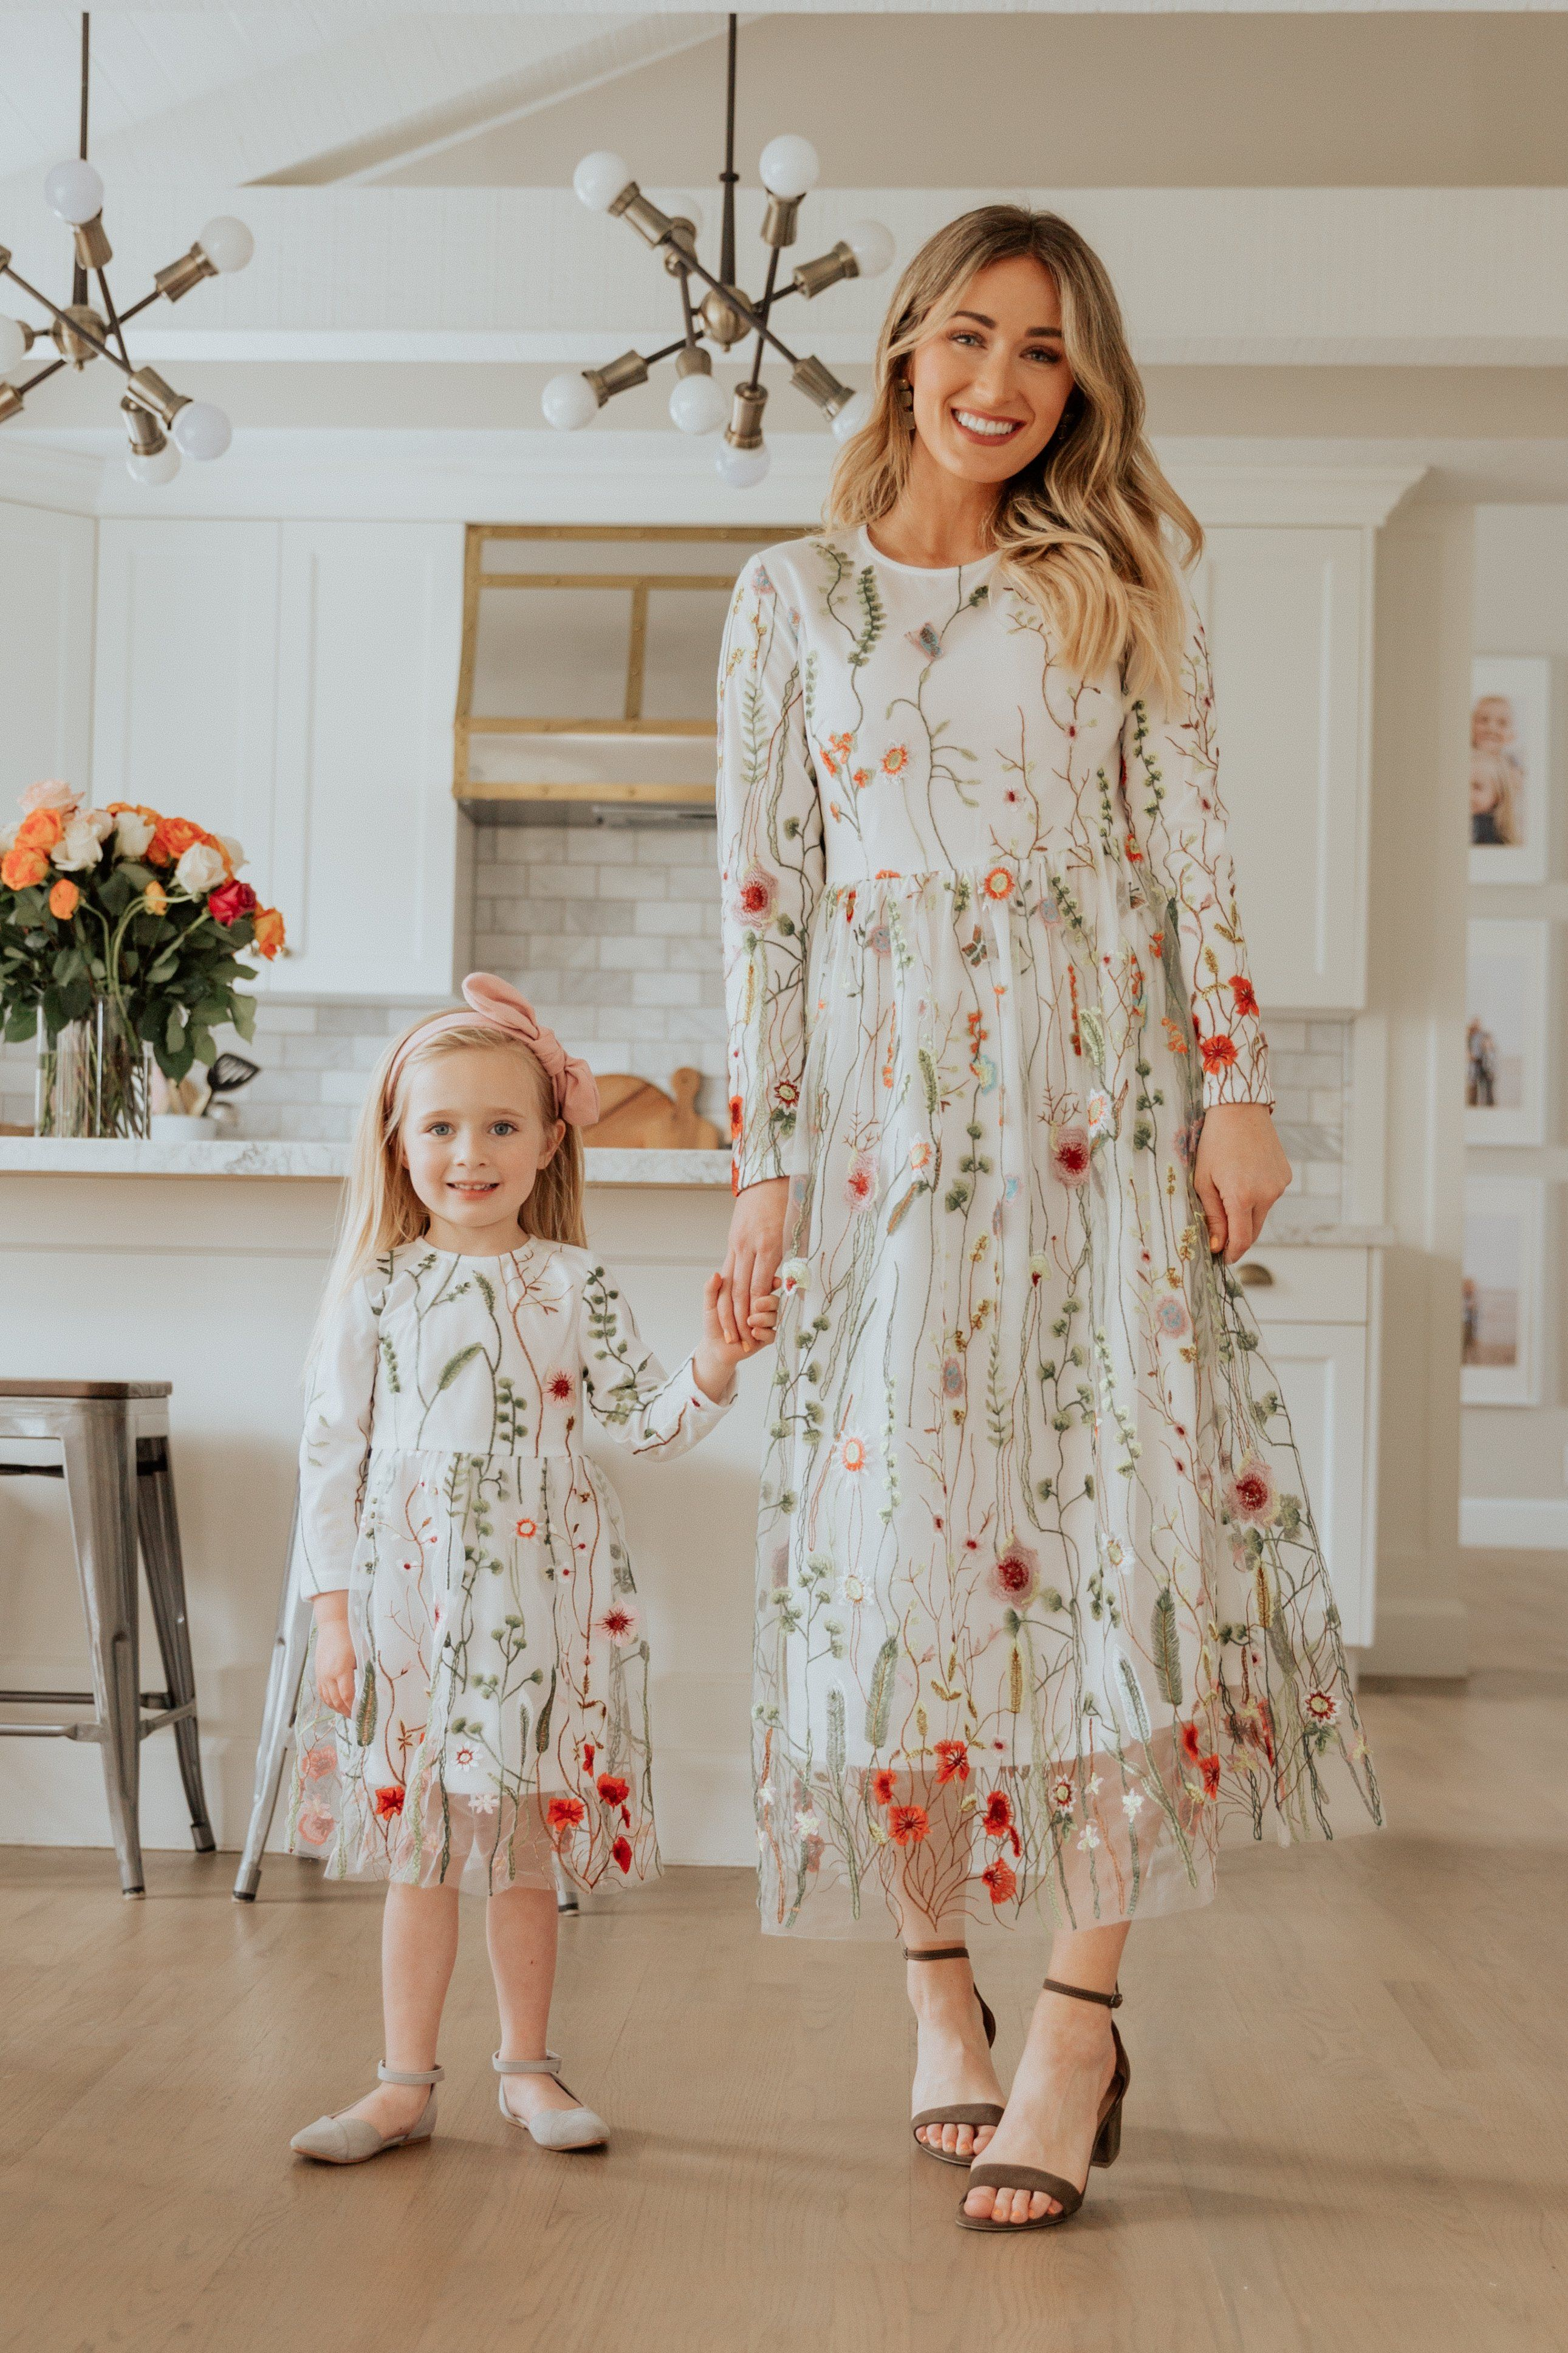 The Garden Party Dress Ivy City Co Mom Daughter Matching Dresses Mother Daughter Matching Outfits Mother Daughter Fashion [ 3872 x 2581 Pixel ]